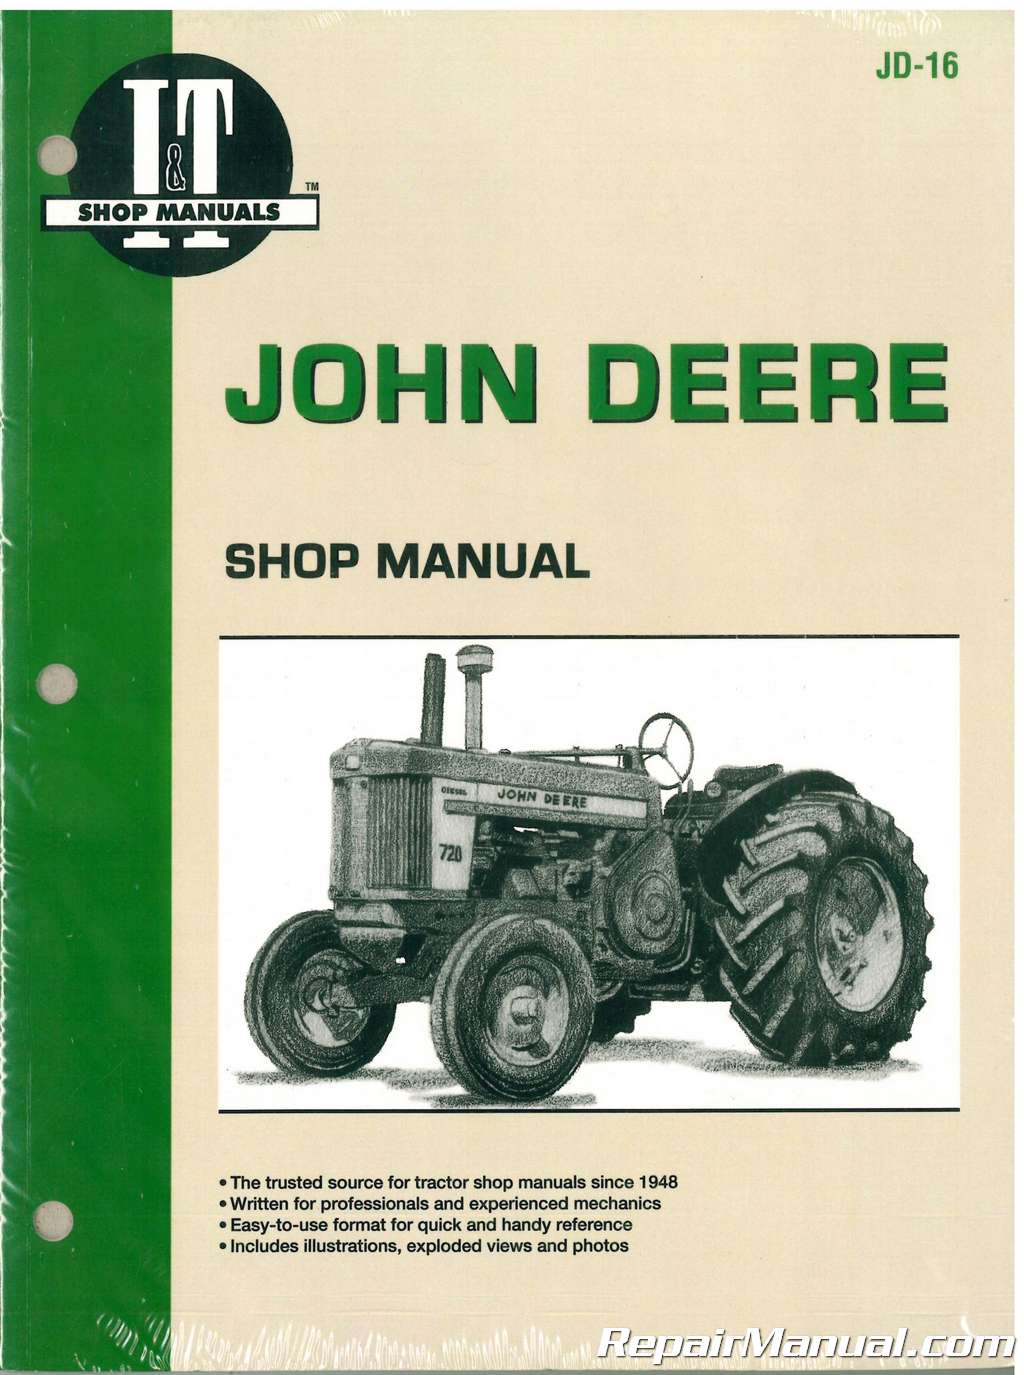 wiring diagram for 720 john deere tractor wiring diagram db Kubota Tractor Wiring Diagrams